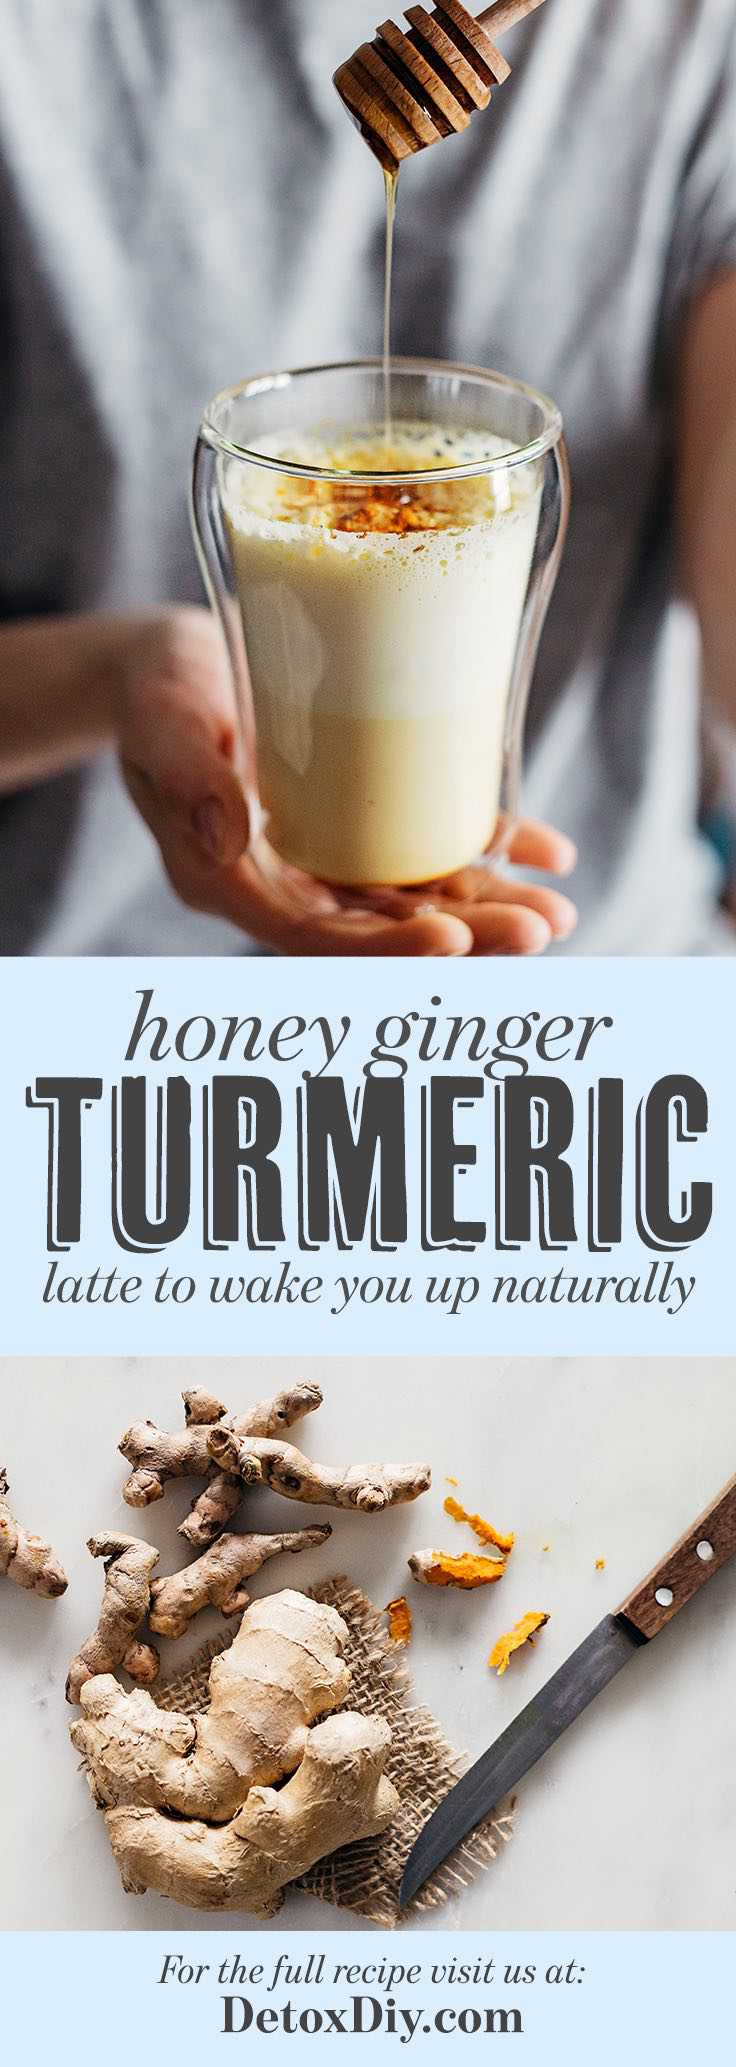 Wake up natural with this energy boosting honey ginger turmeric latte.